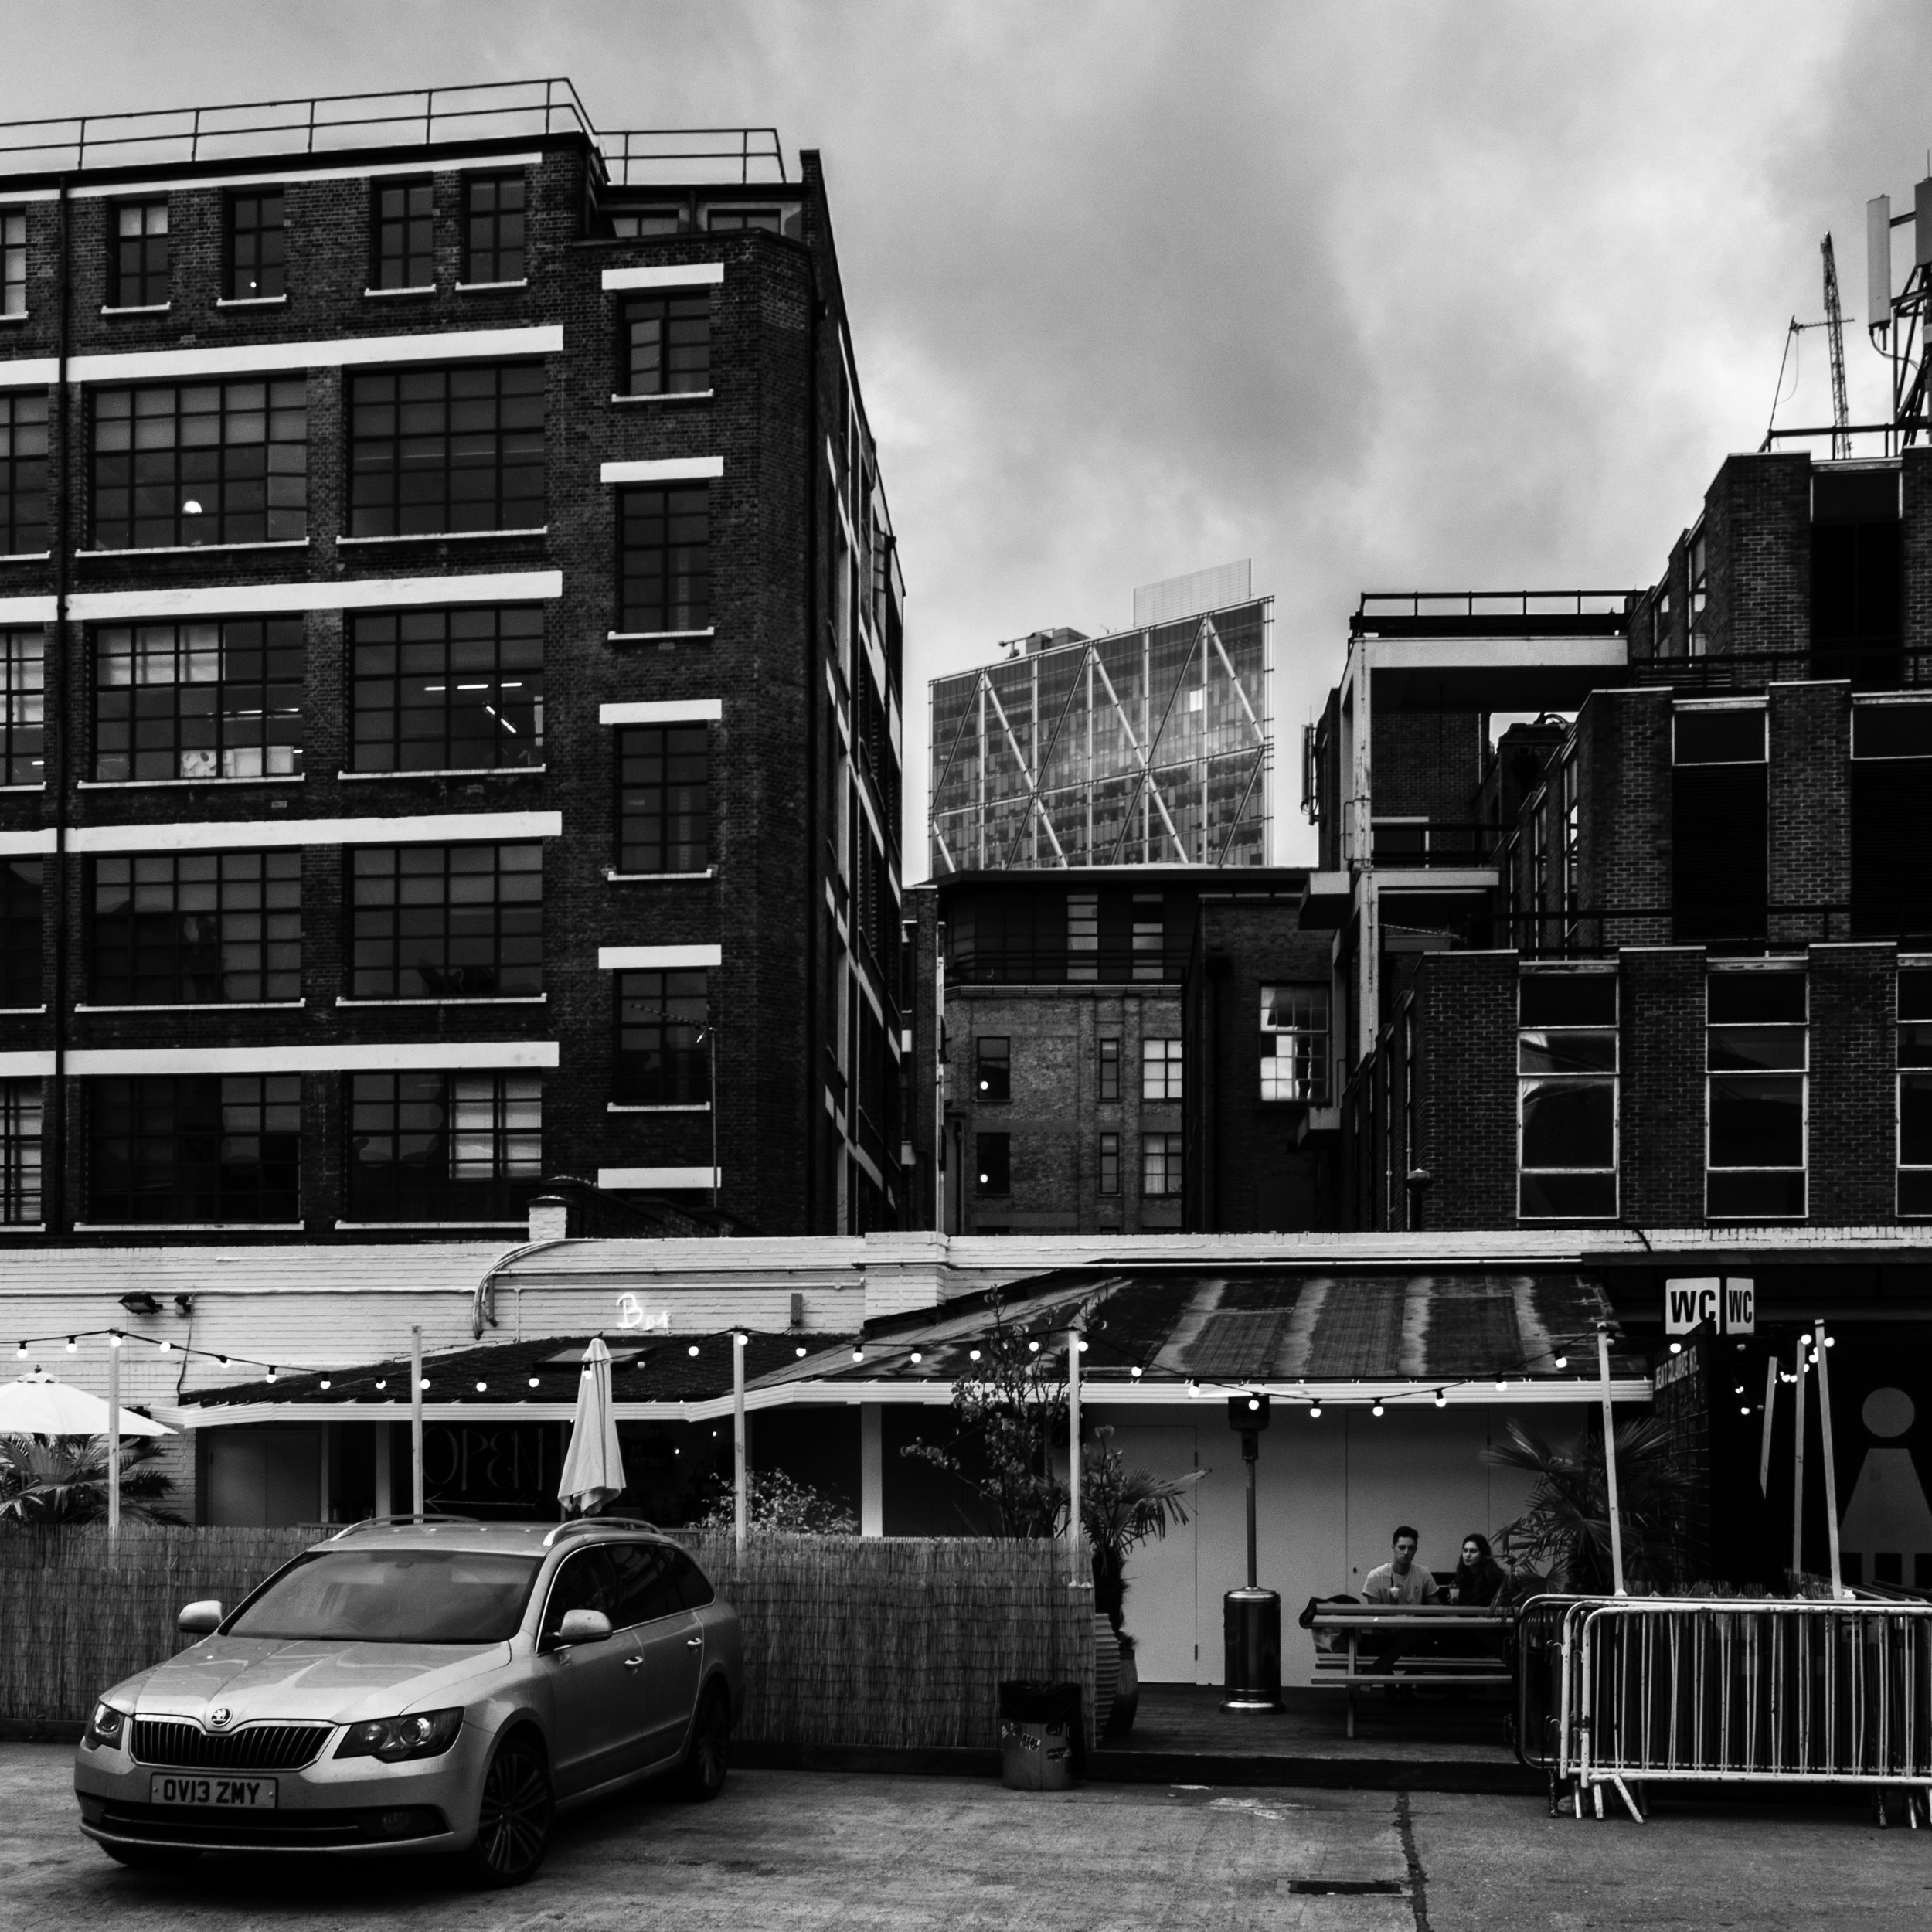 Broadgate peeping through the old blocks in the courtyard of the Old Truman Brewery